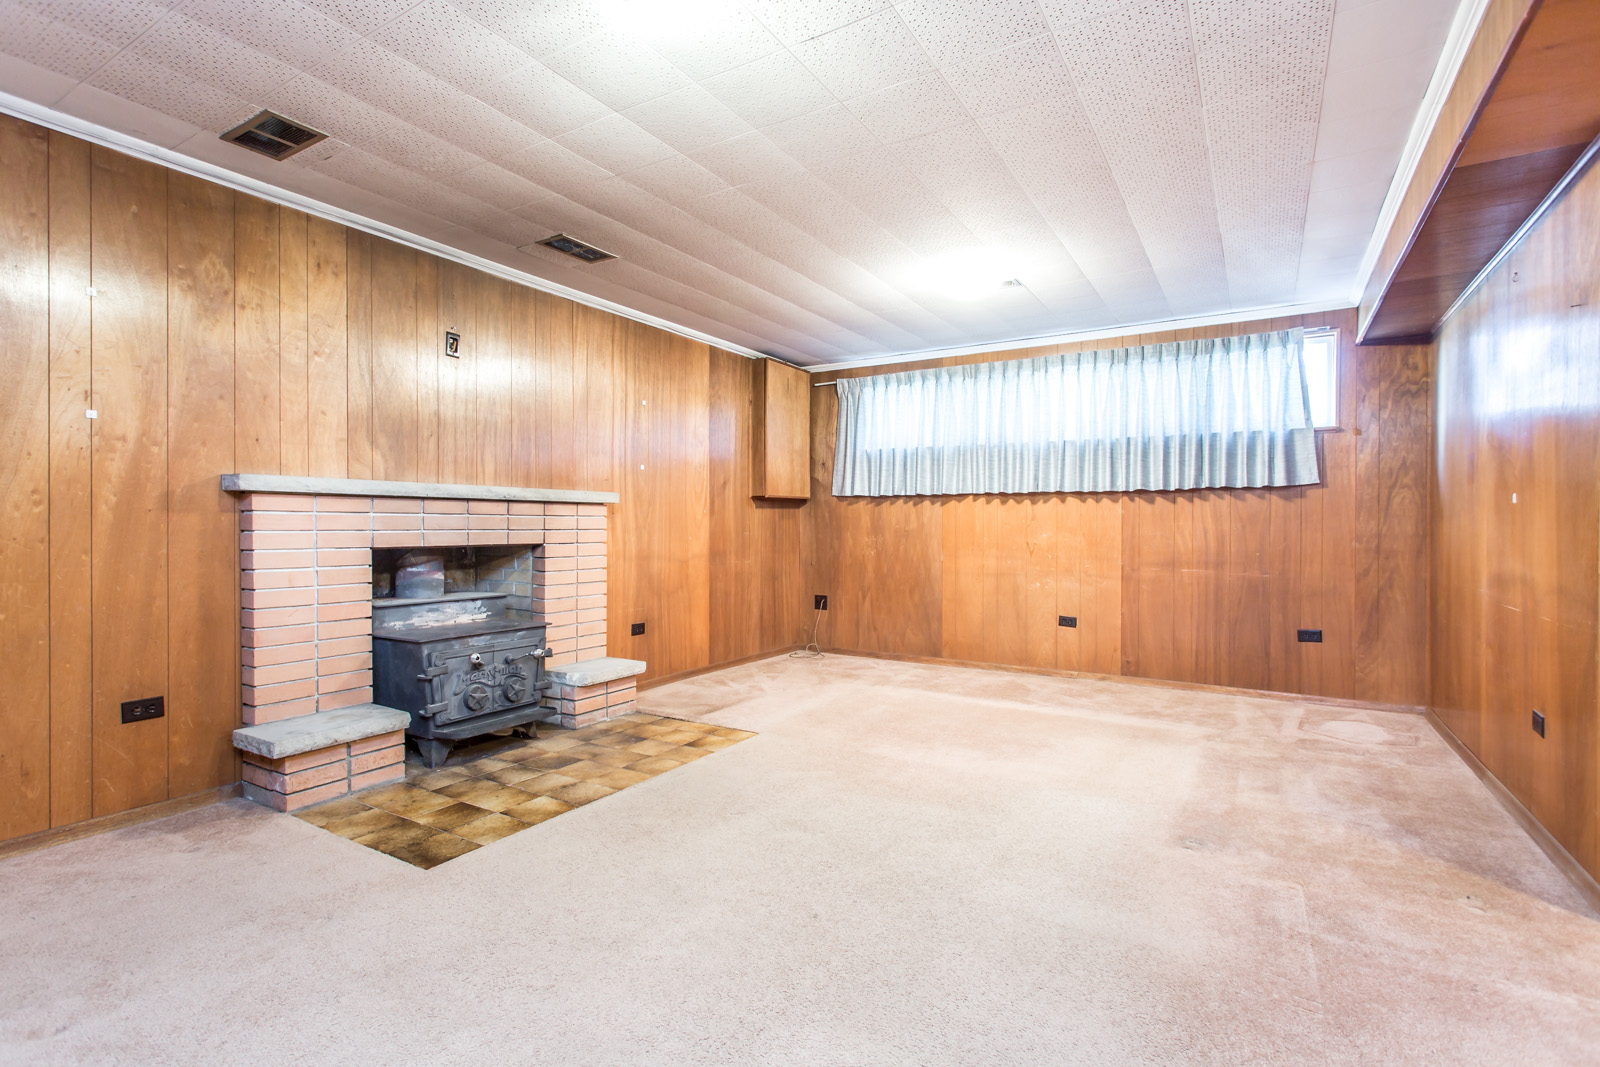 Rec room with carpet and furnace. Almost all of it is covered in carpet, while the walls have wooden panels.